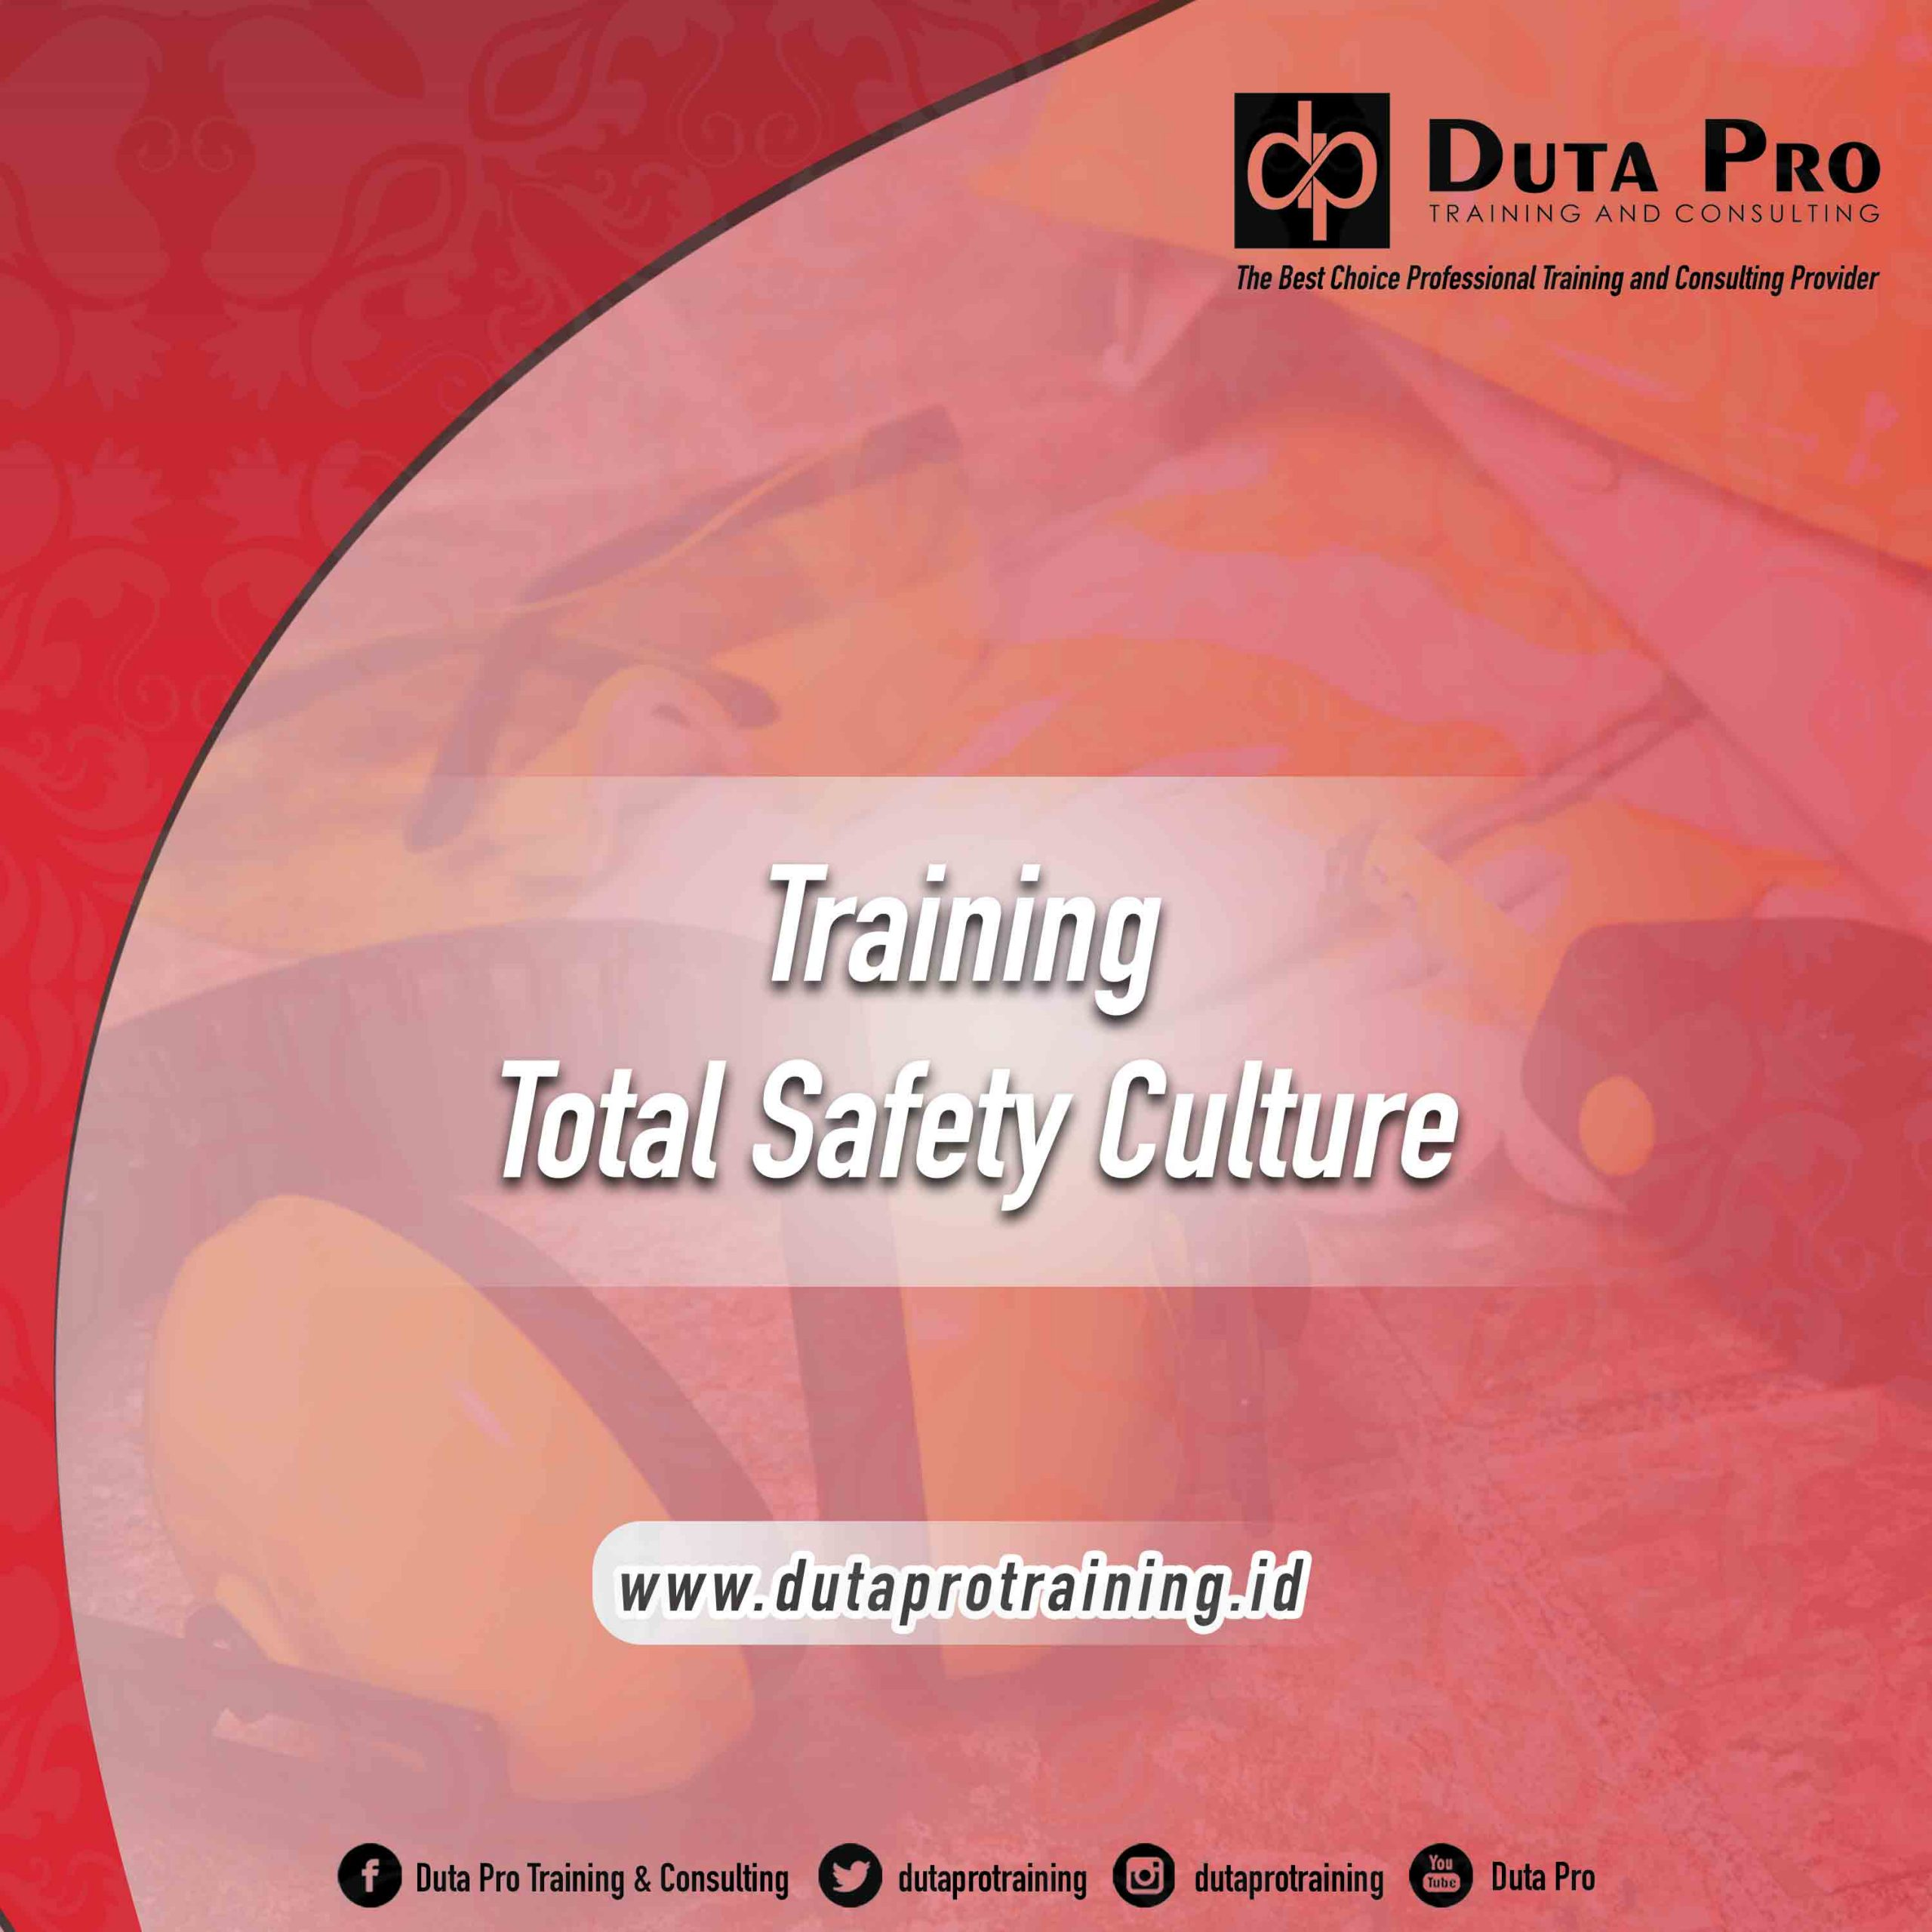 Training Total Safety Culture